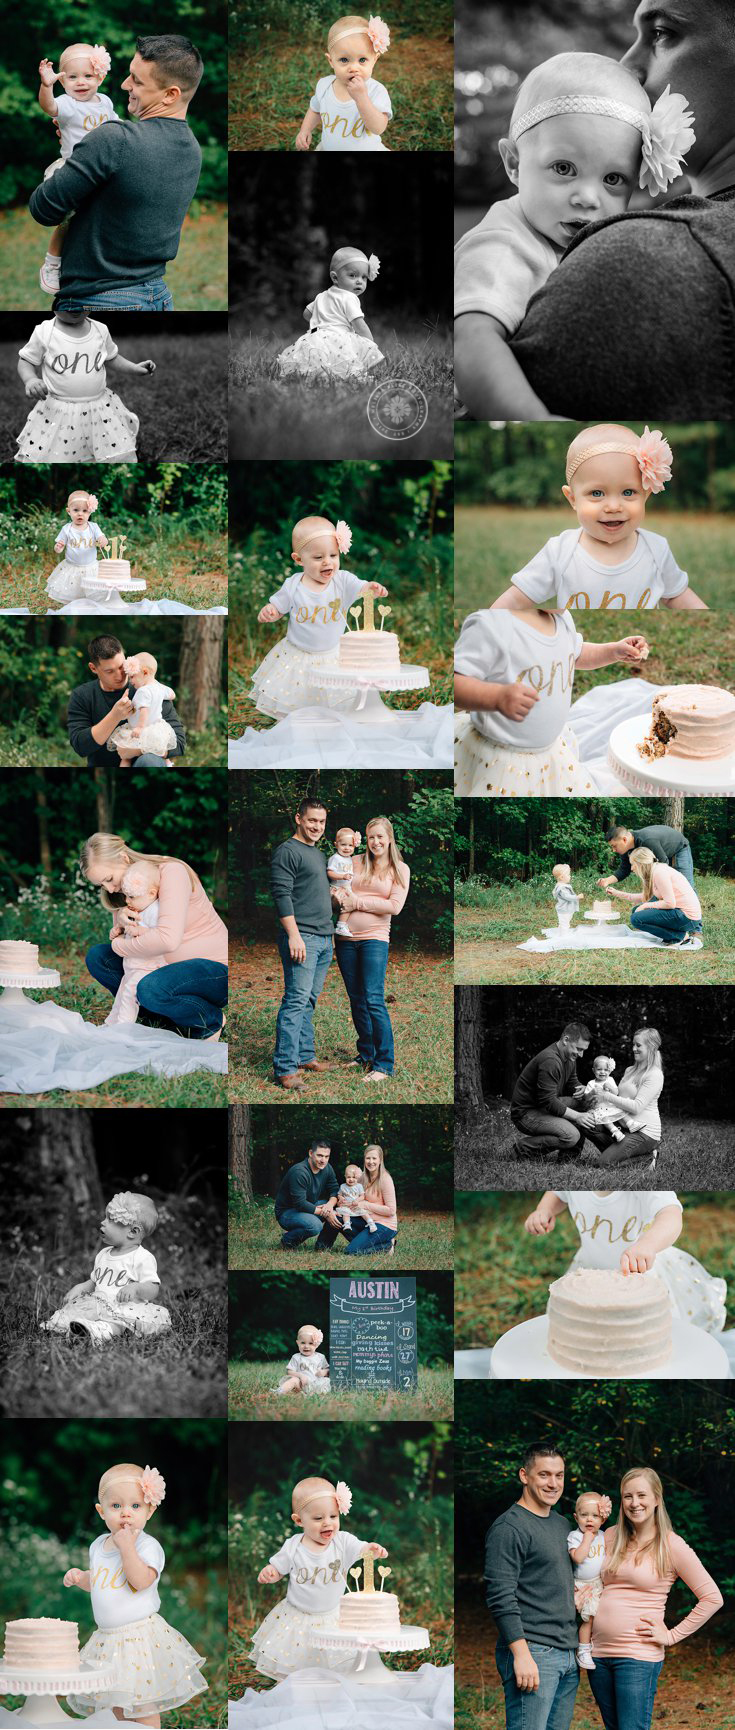 family-lifestyle-photography-fall-photo-ideas-cake-smash-session-family-photoshoot-inspiration-chesapeake-photographer-melissa-bliss-photography